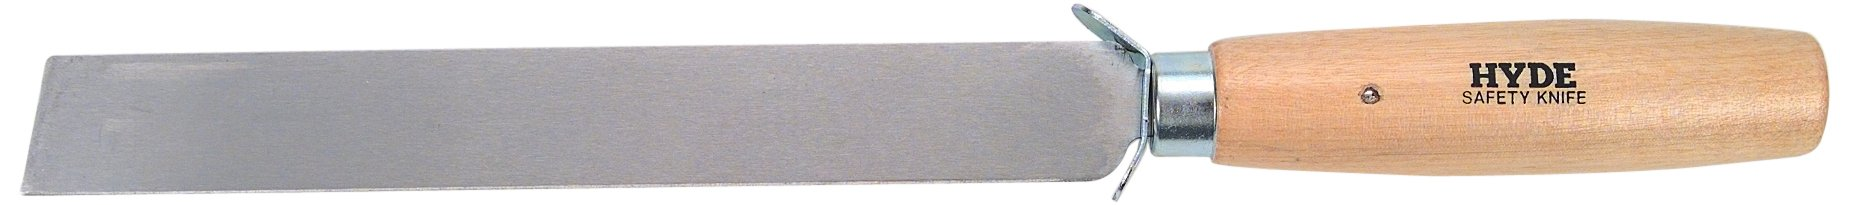 Hyde Tools 60810 8-Inch 14-Gauge Square-Point Safety Knife